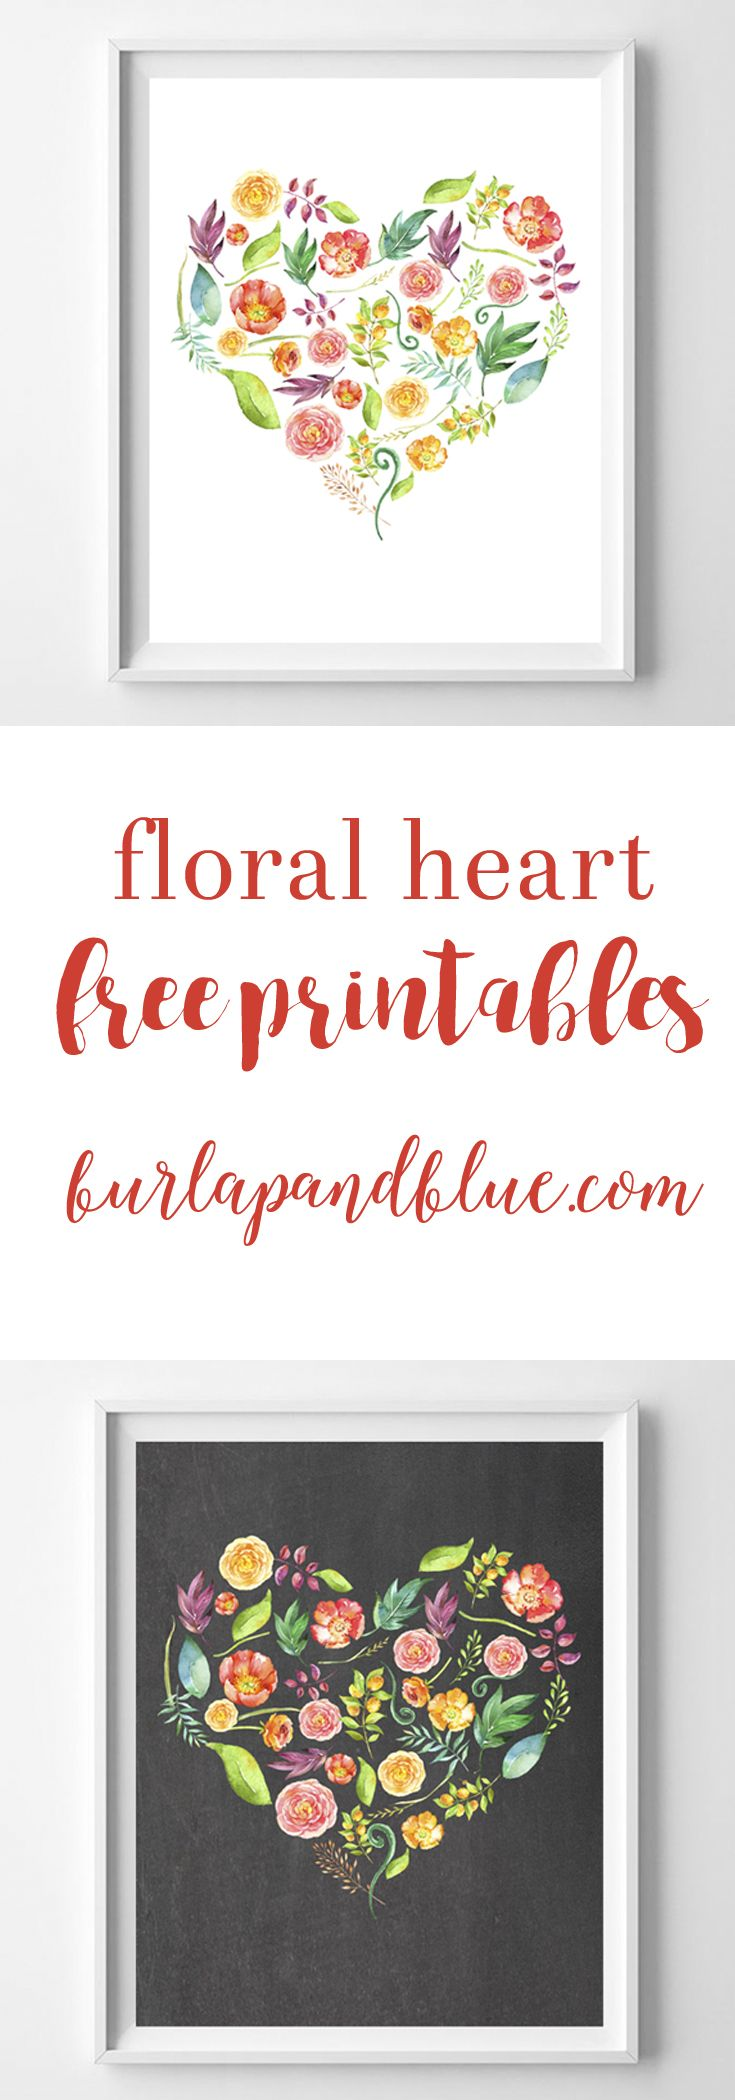 Free printable art! These flower heart printables are perfect for gifts, gallery walls, or mantle decor. Such a fun wall art piece!